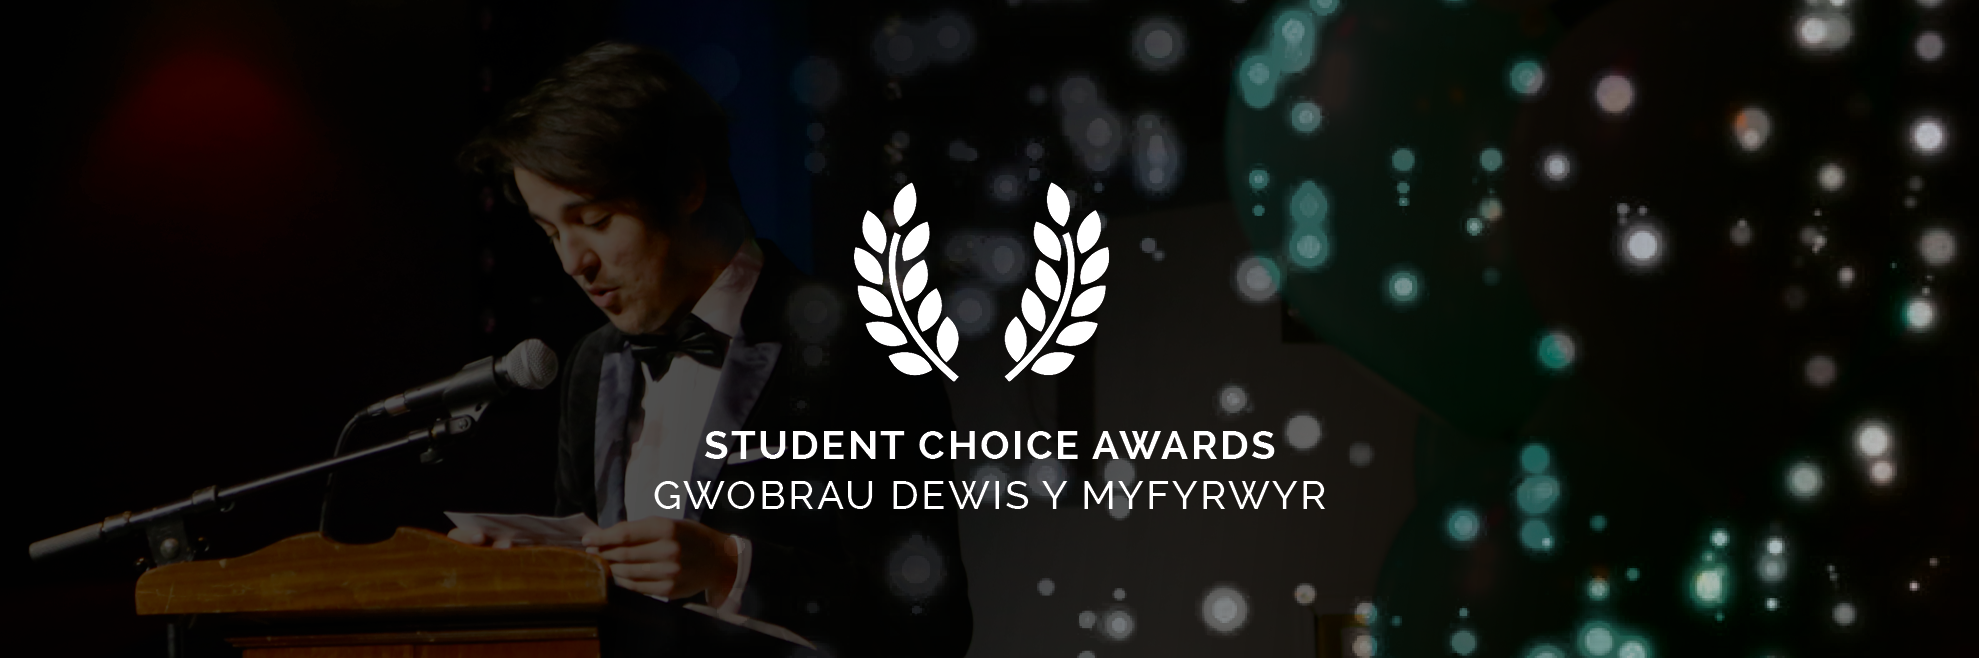 Student Choice Awards @ University of South Wales Students' Union